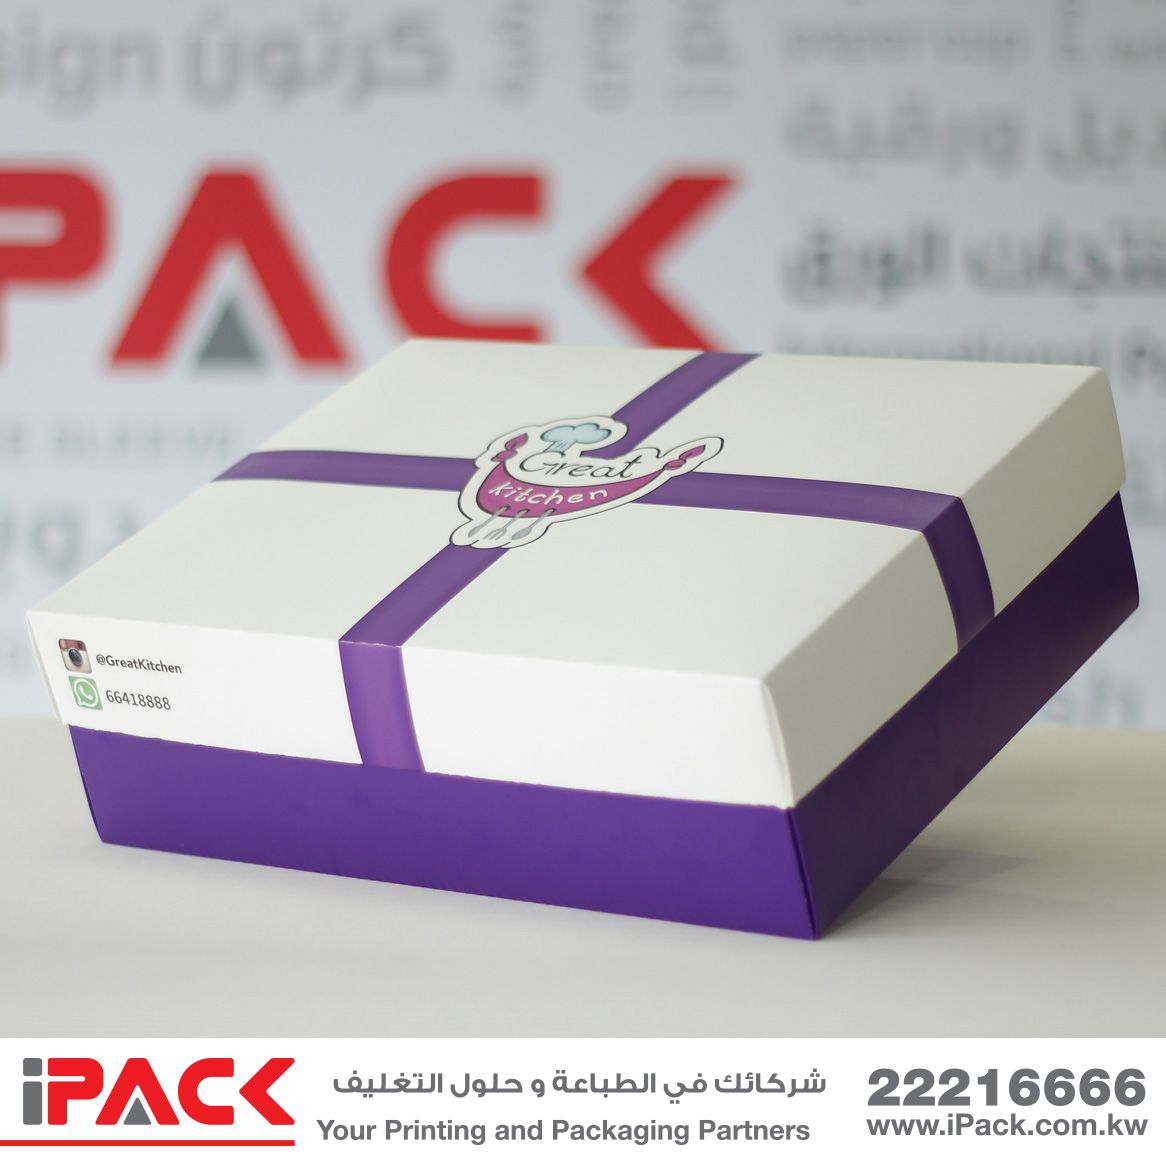 Custom Cake Boxes In Various Sizes علب كيك مطبوعة بقياسات مختلفة Box Cake Custom Cakes Decorative Boxes